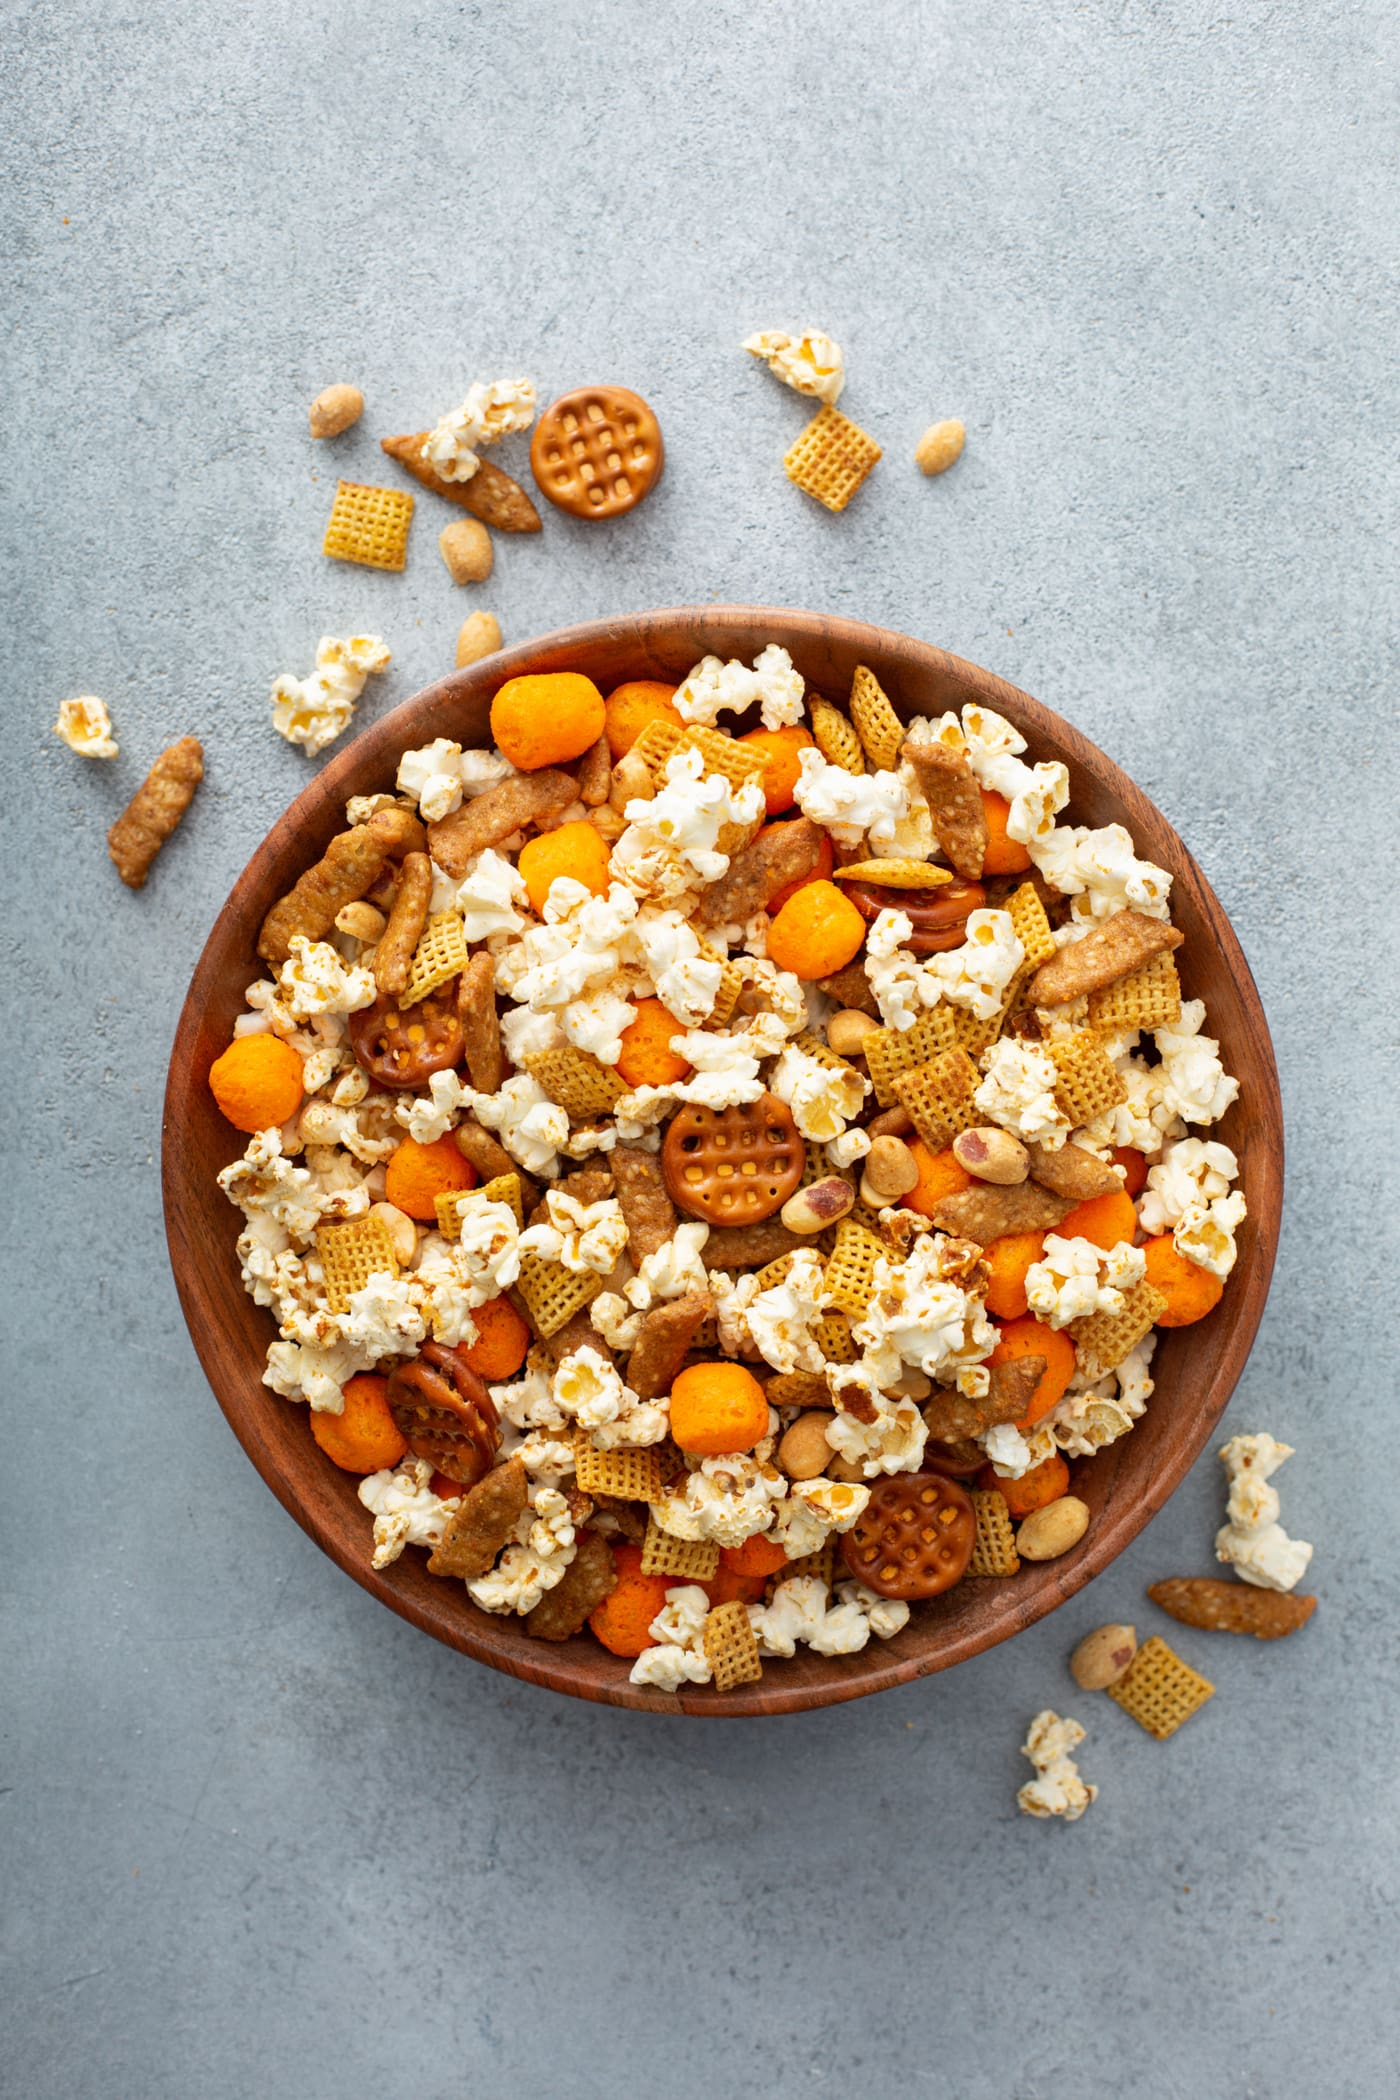 A bowl of March Madness snack mix. It contains popcorn, peanuts, cheese balls, pretzels, chex and sesame sticks.